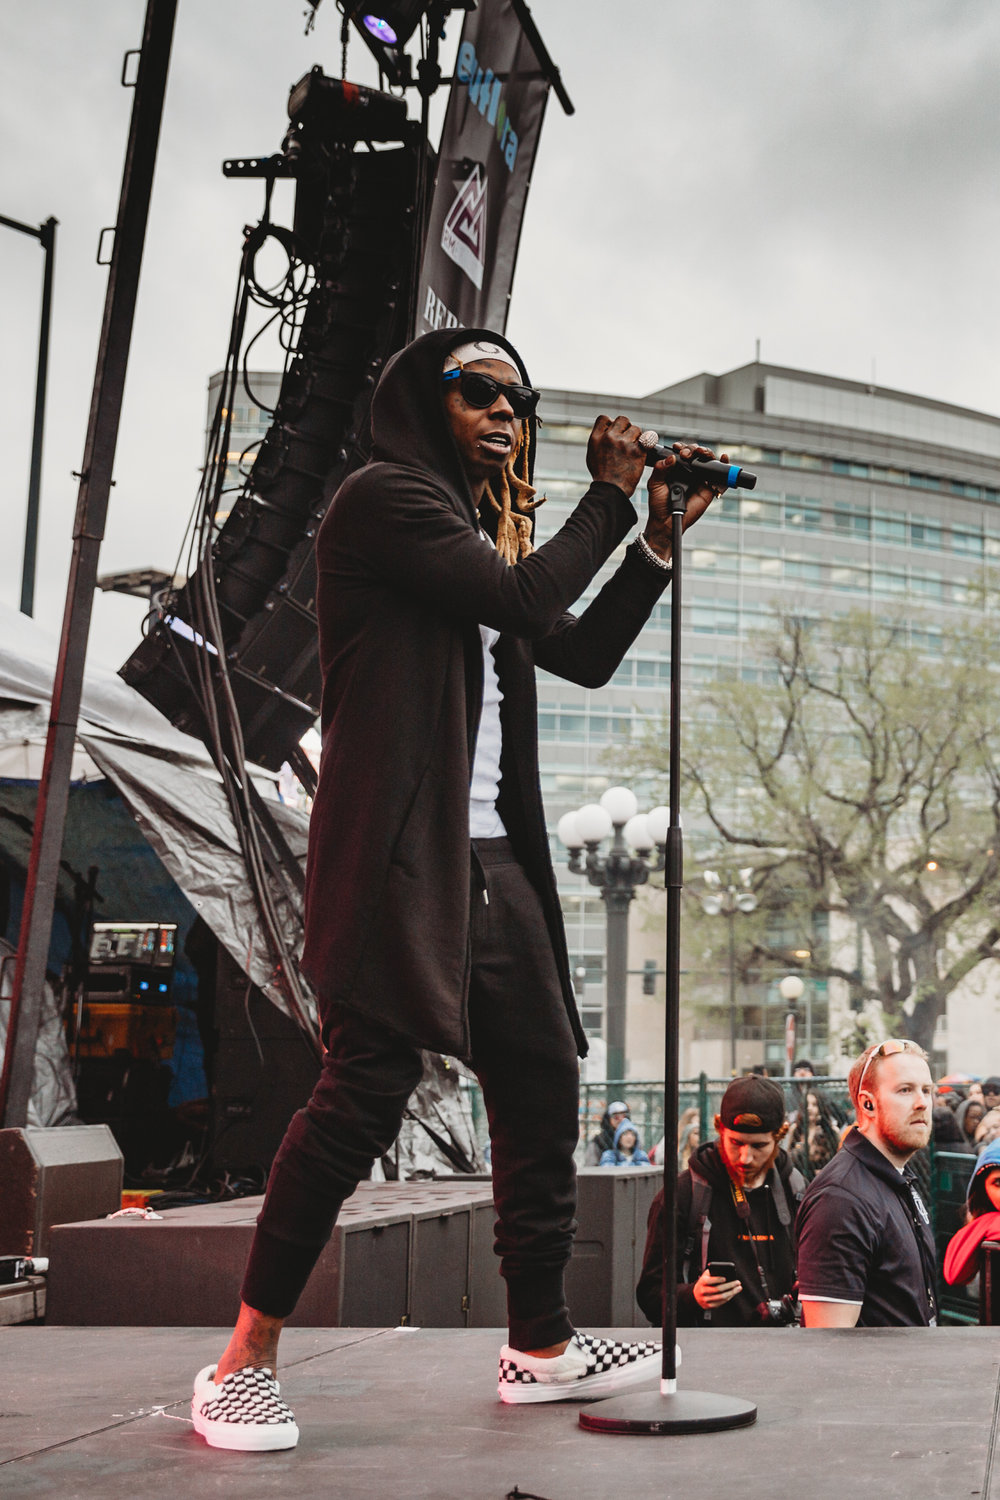 Mile High 420 Festival Civic Center Park Nikki A. Rae Photography Lil Wayne 04.20.2018-12.jpg